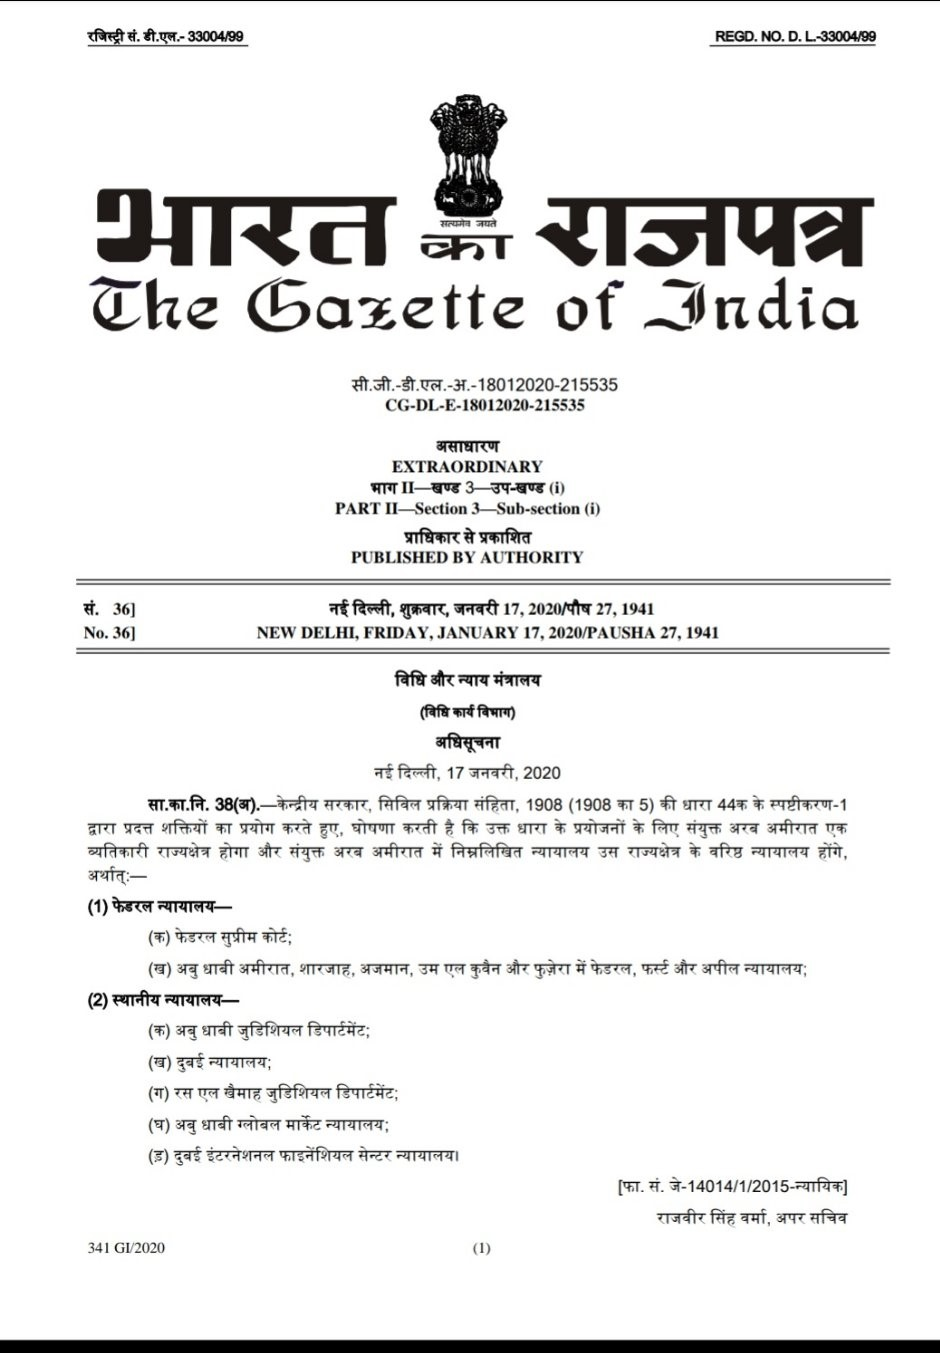 The gazette notification dated January 17, 2020 and published by the Indian Ministry of Law and Justice on January 18, 2020. Photo Courtesy: Twitter